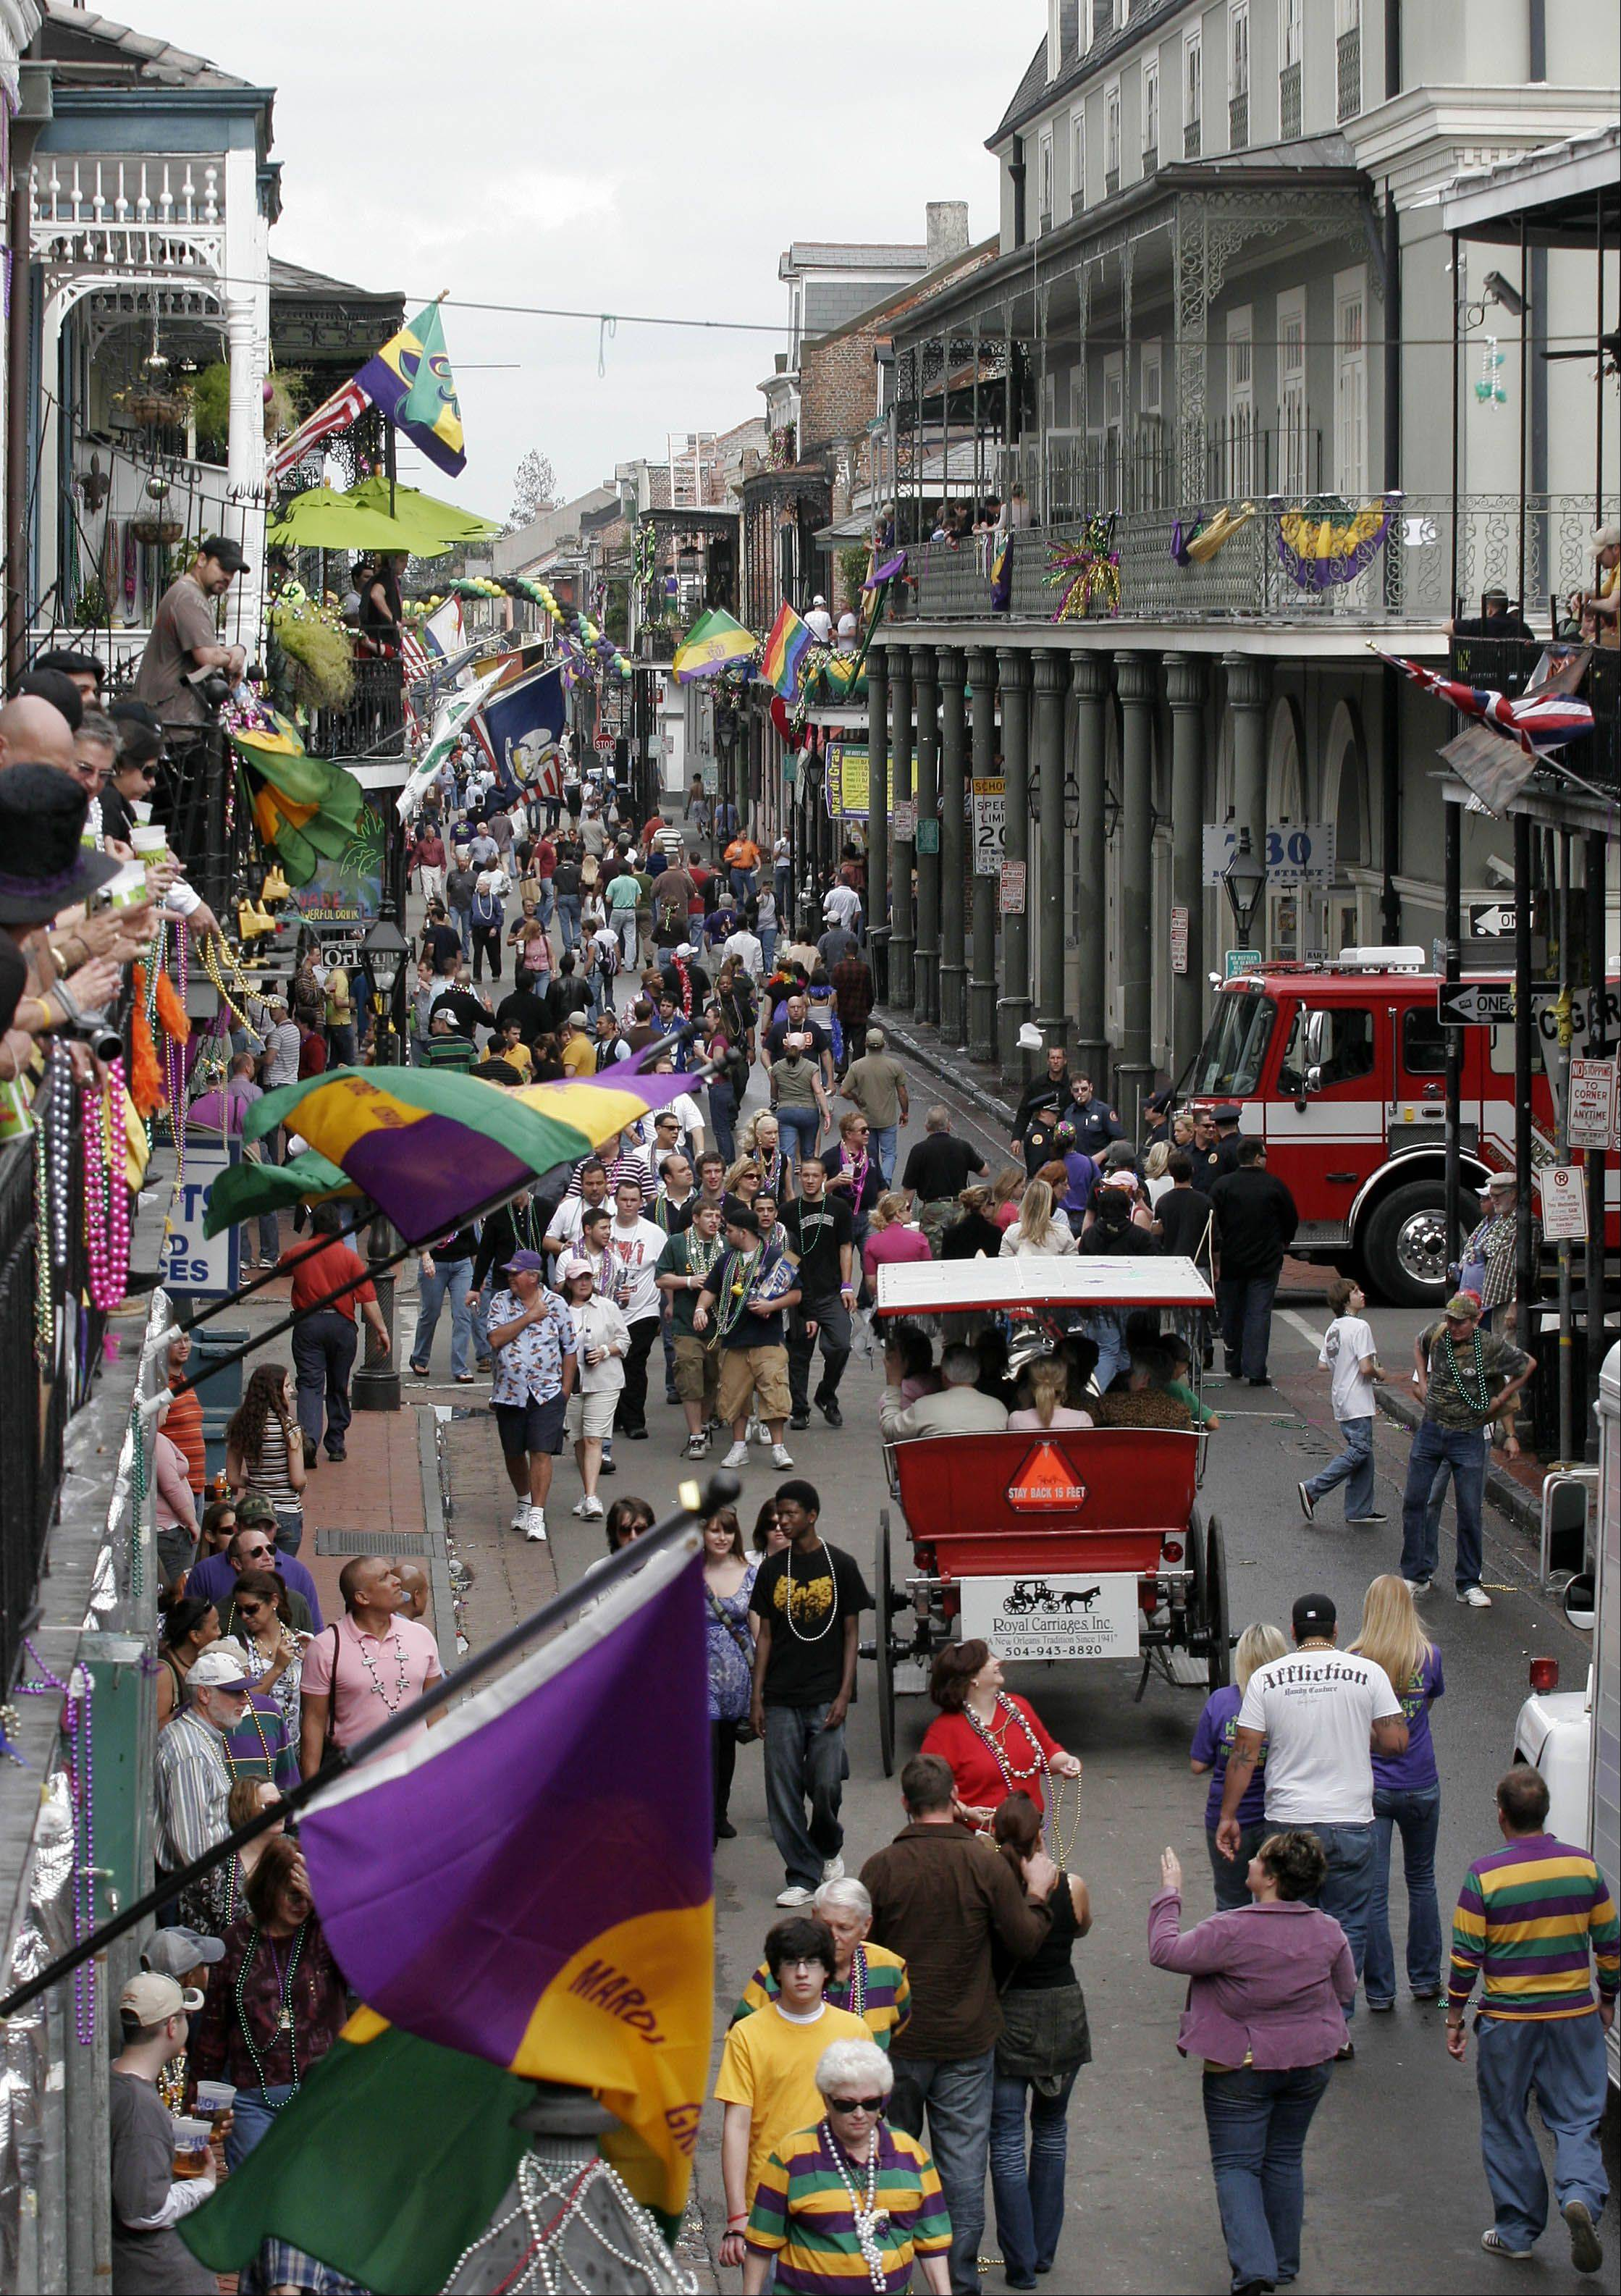 The city of New Orleans will draw thousands of gay couples for Southern Decadence week.